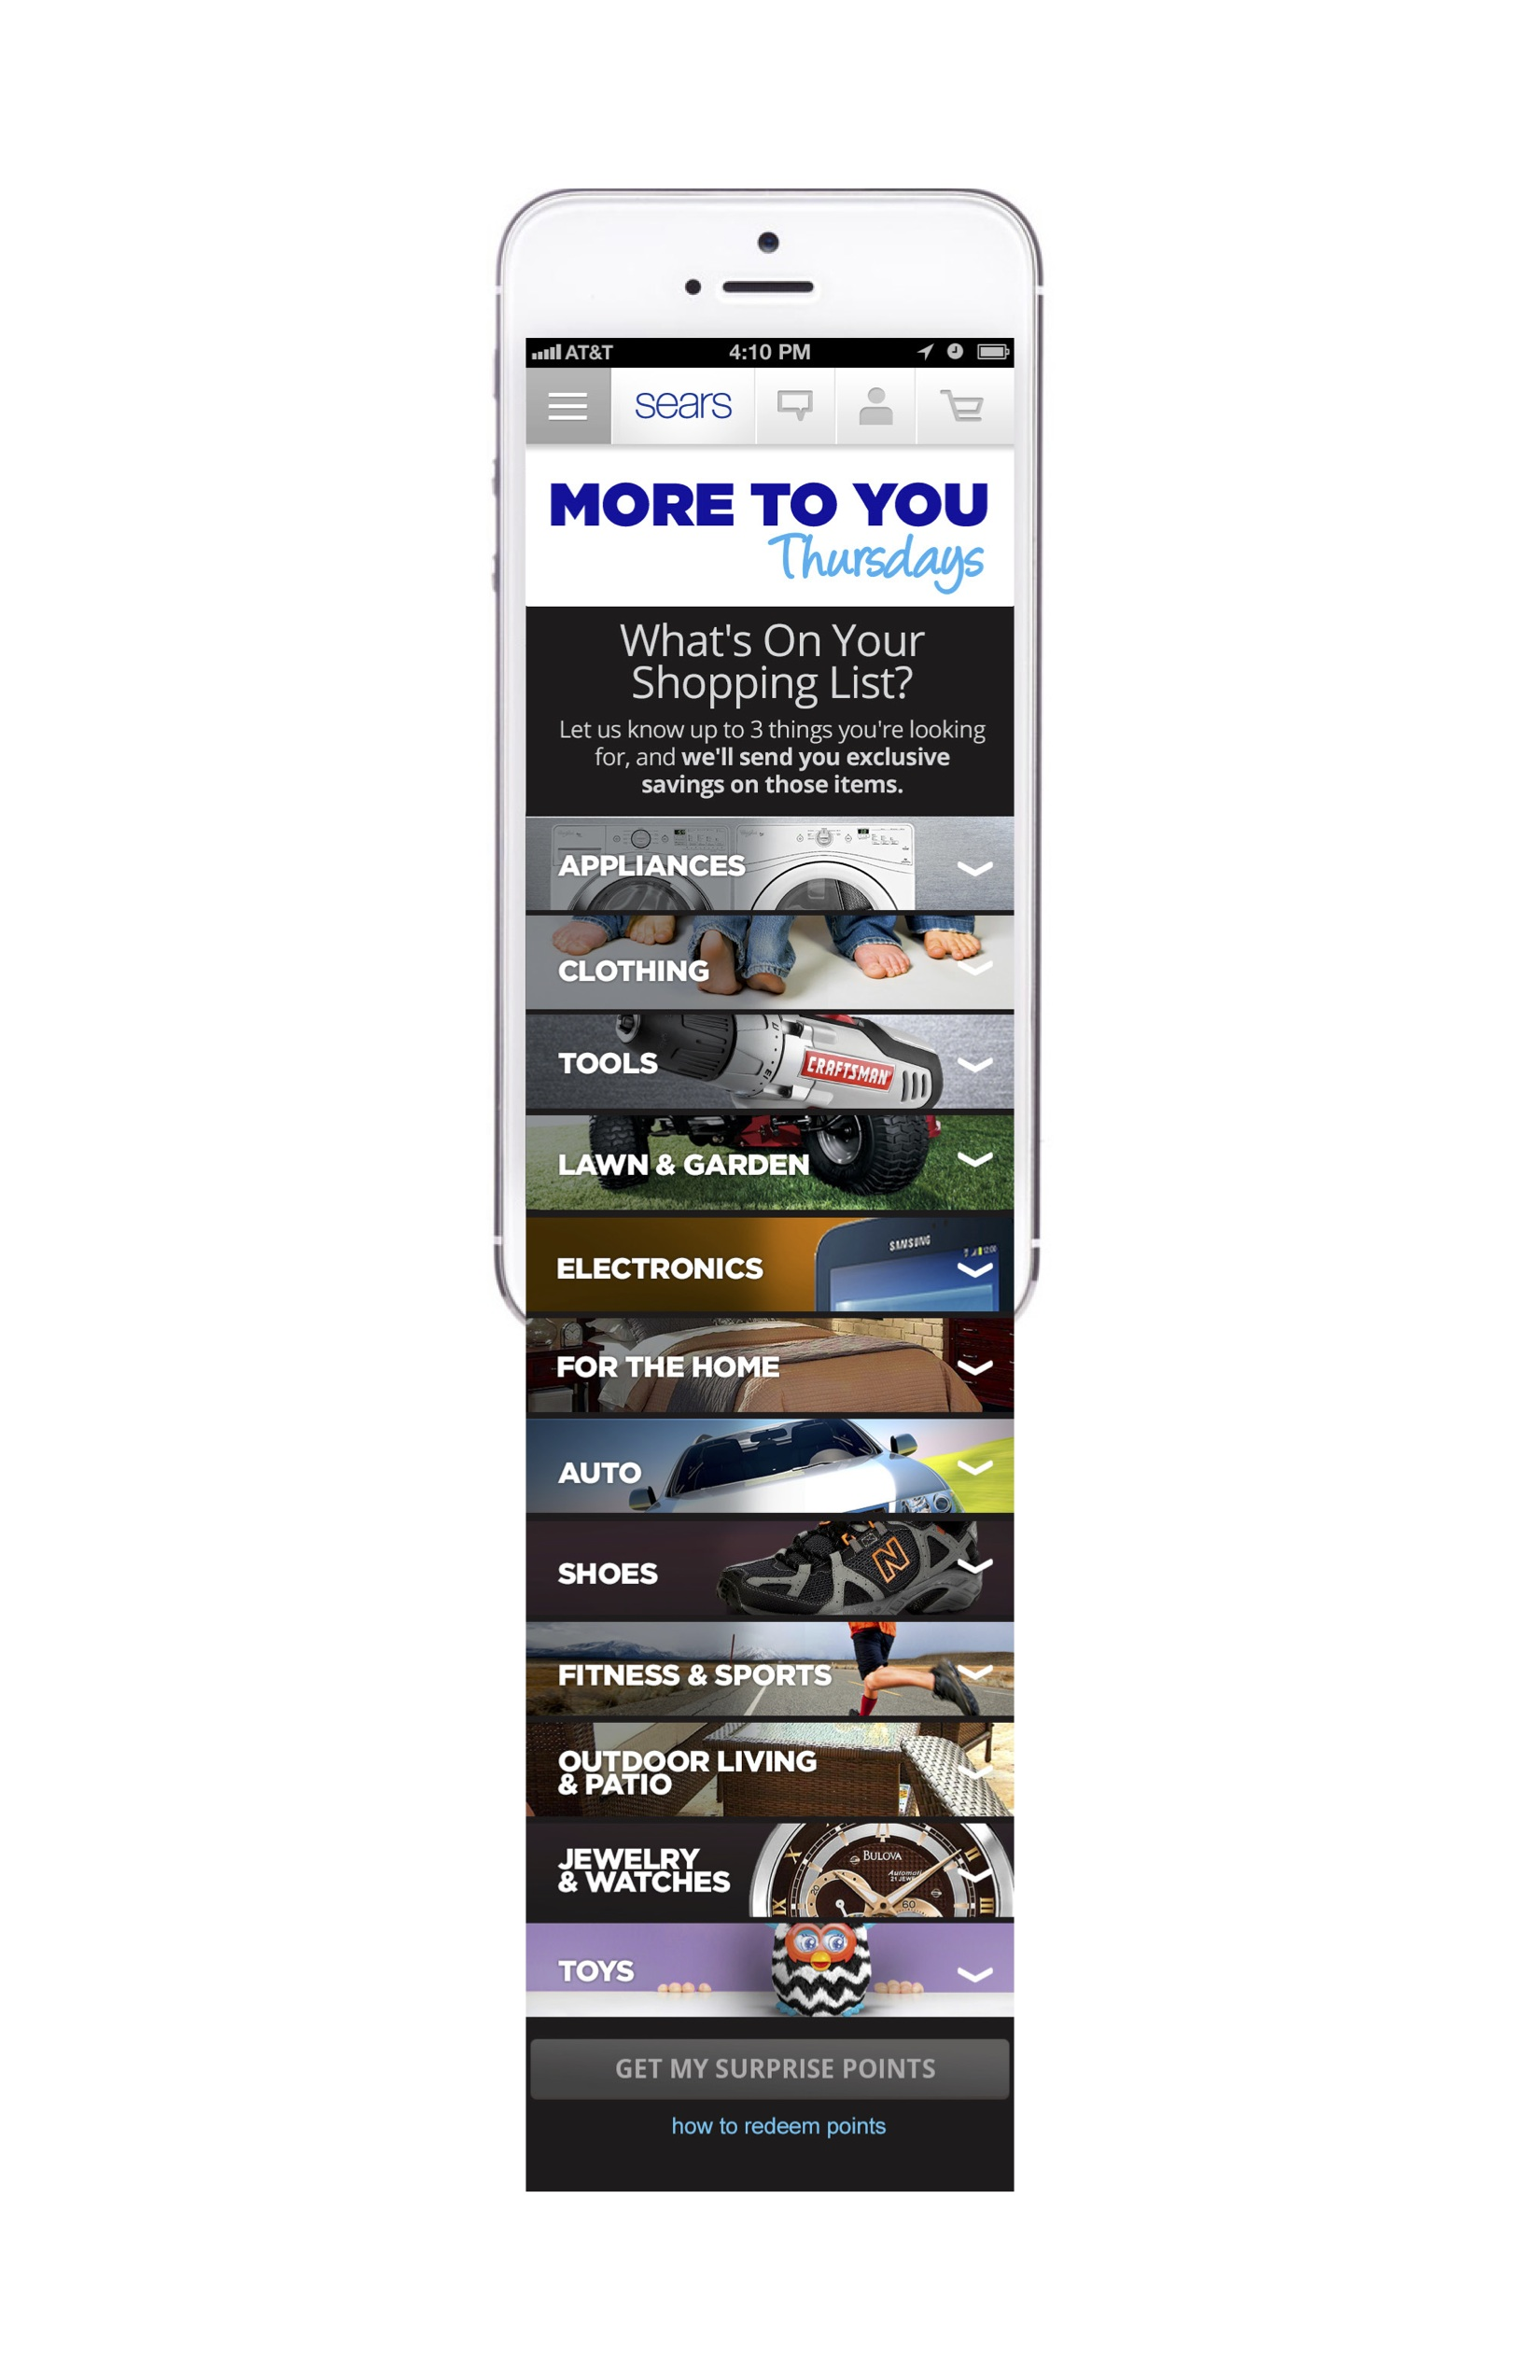 More to You Thursday Mobile Landing Page